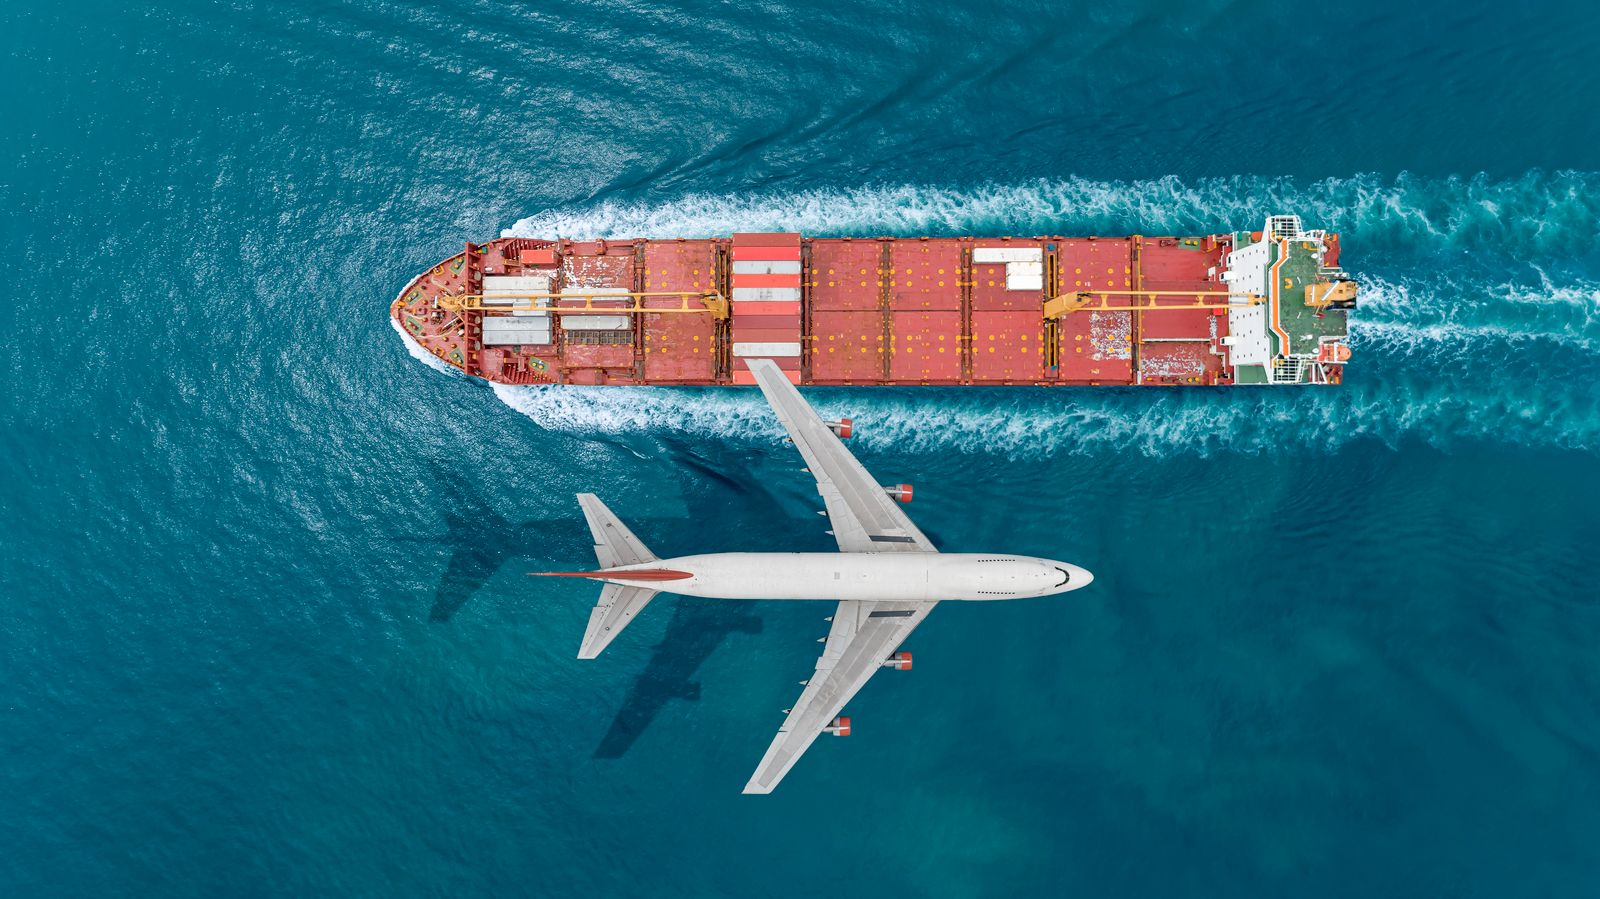 Container ship sail through airplane flying on the sea.